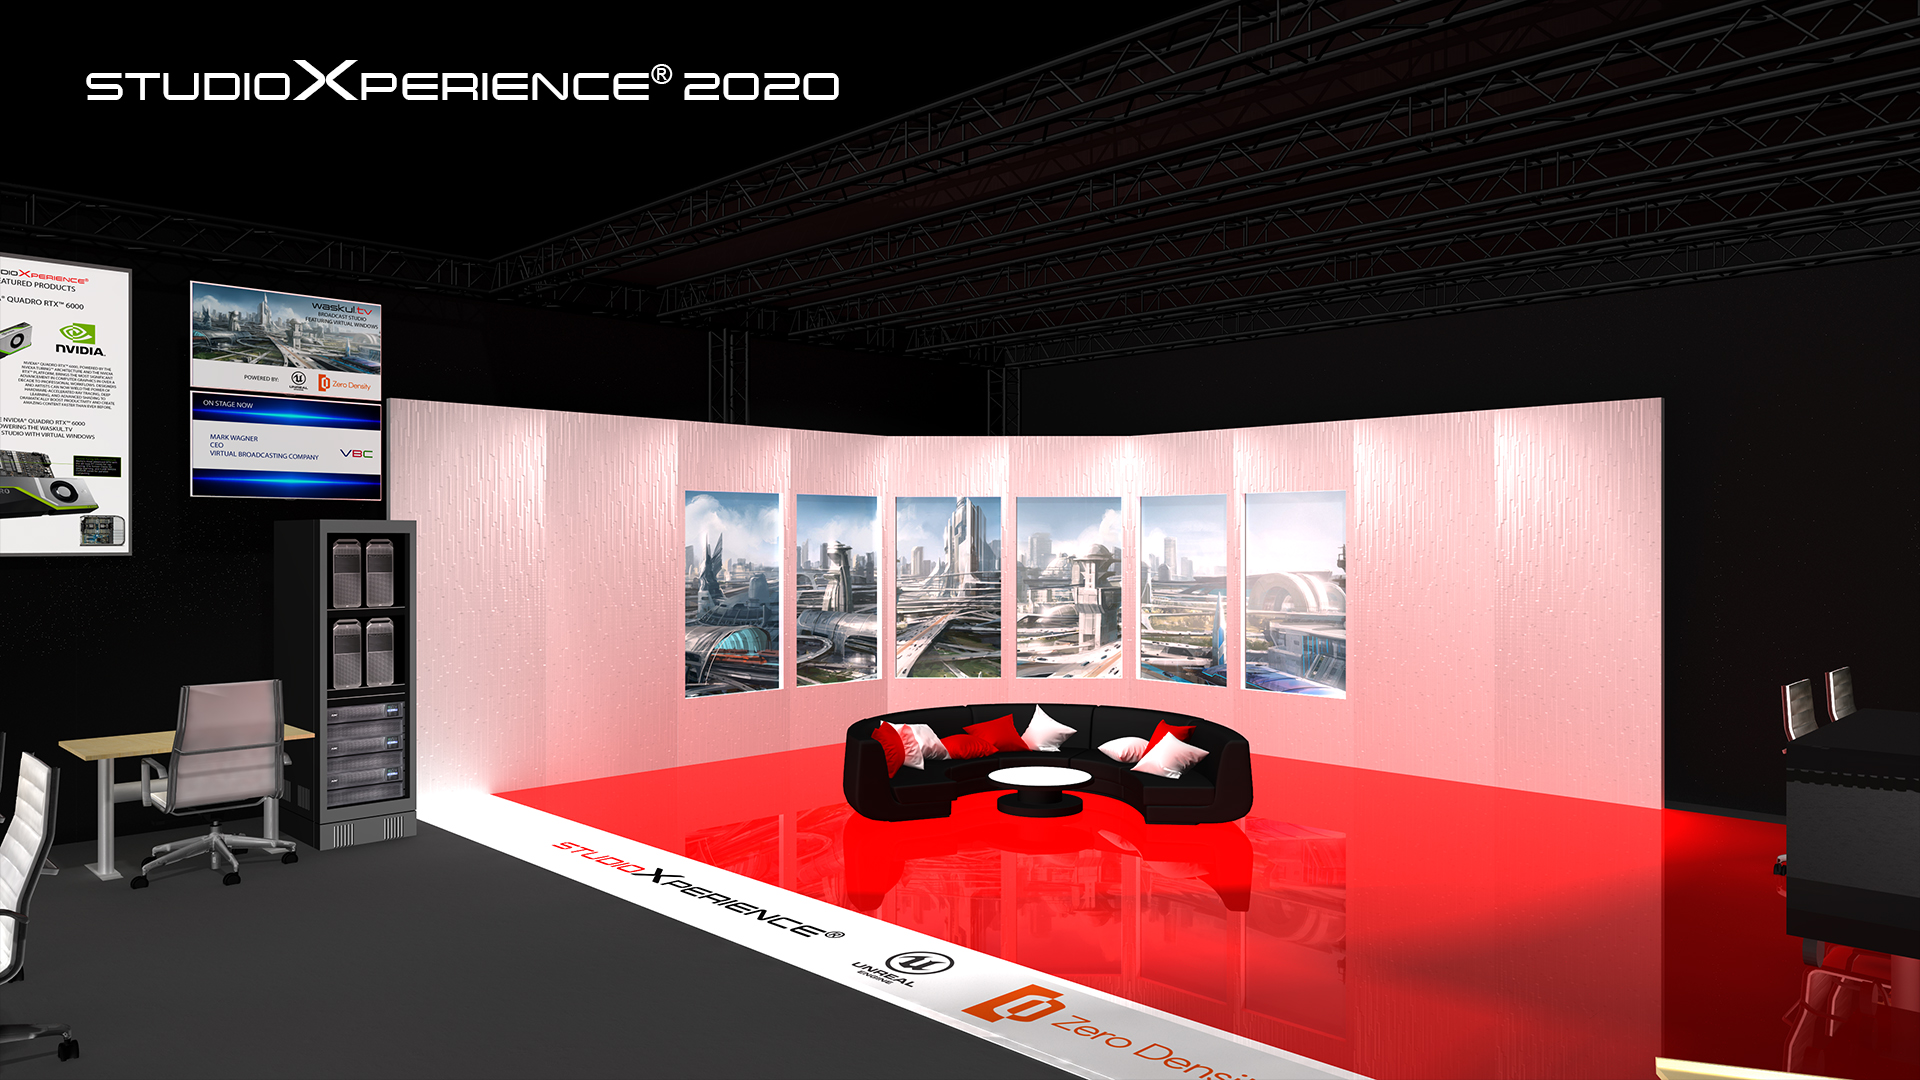 Concept Rendering for the StudioXperience Broadcast studio to be showcased at the 2002 NAB Show